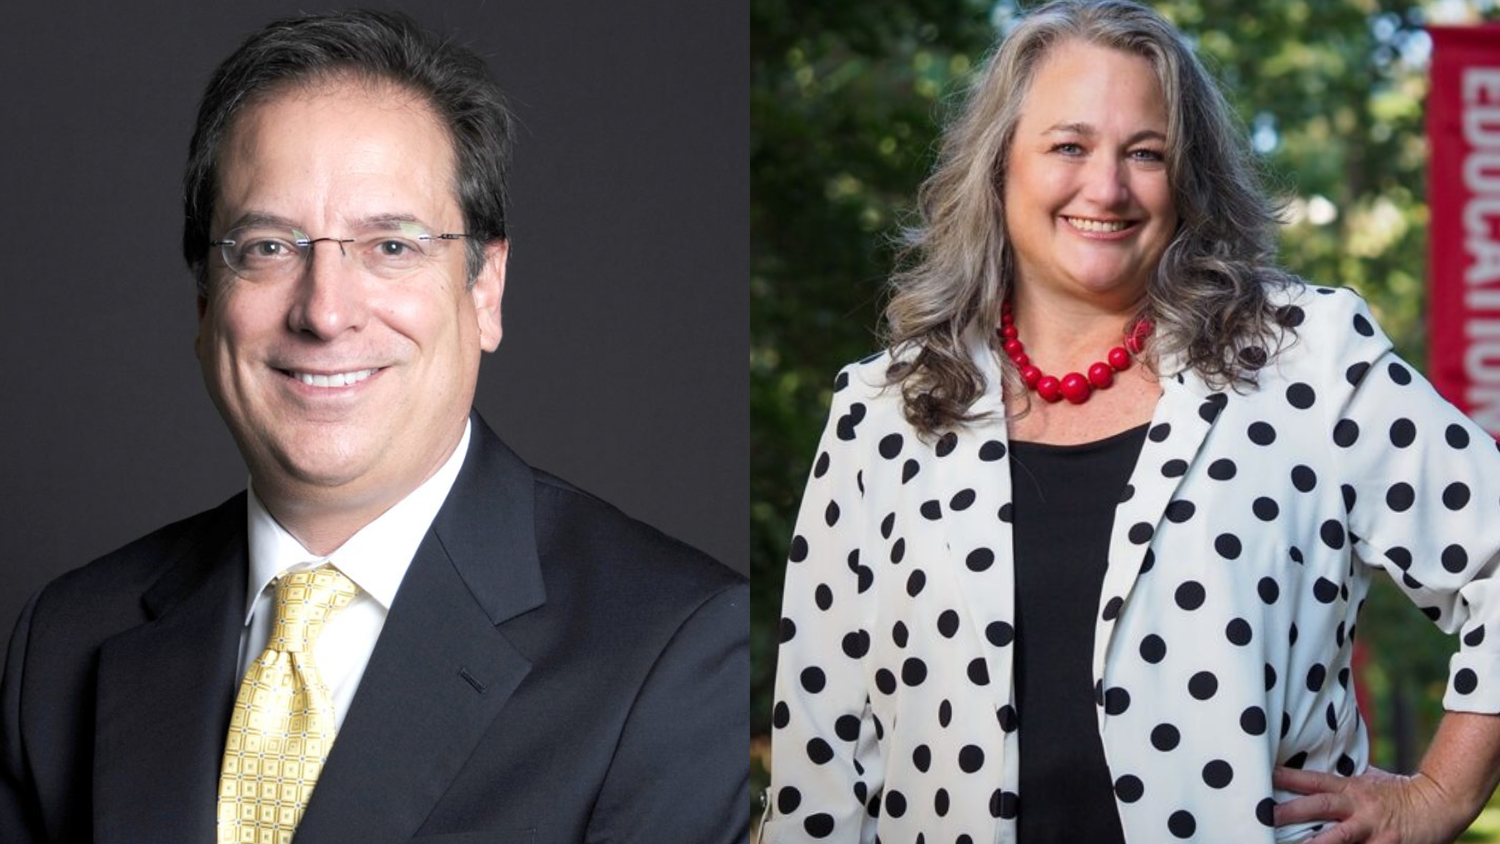 NC State College of Education Distinguished Professors Lance Fusarelli and Hollylynne Lee